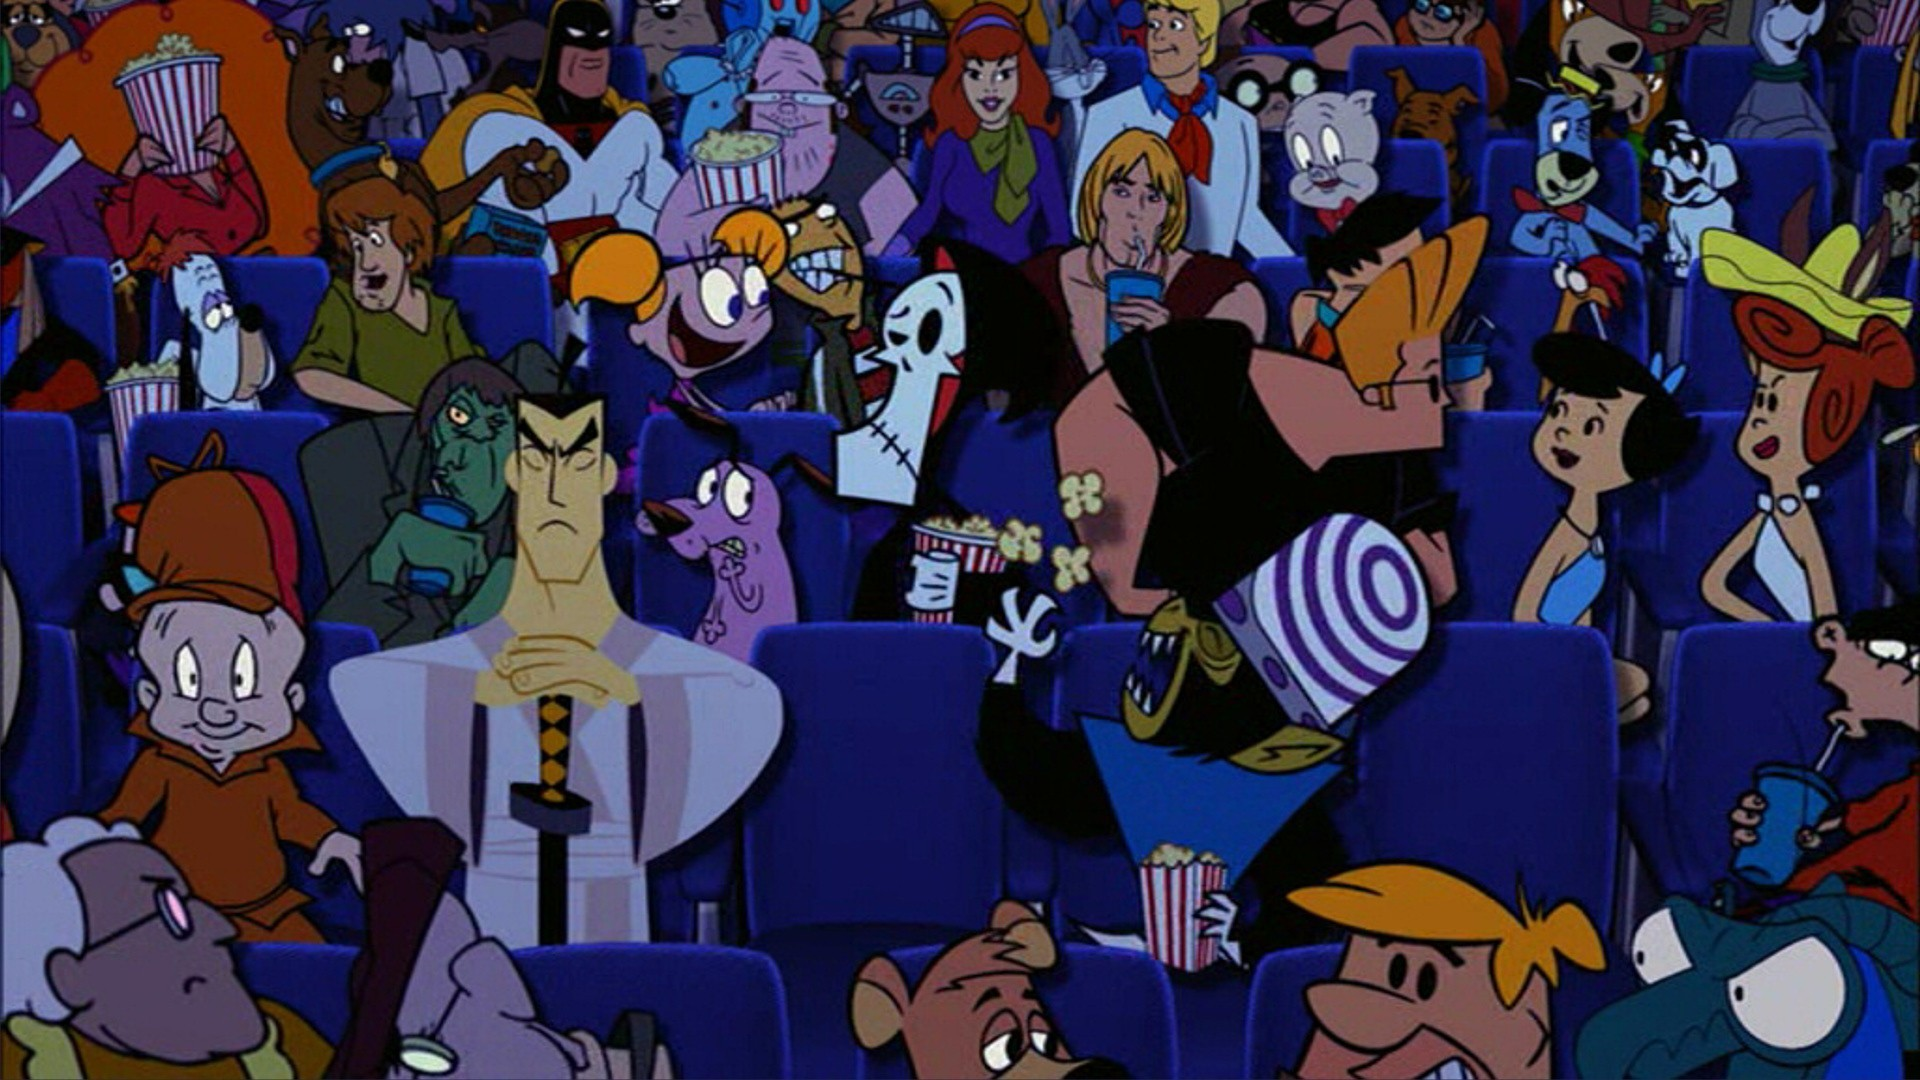 cartoon characters hd images download